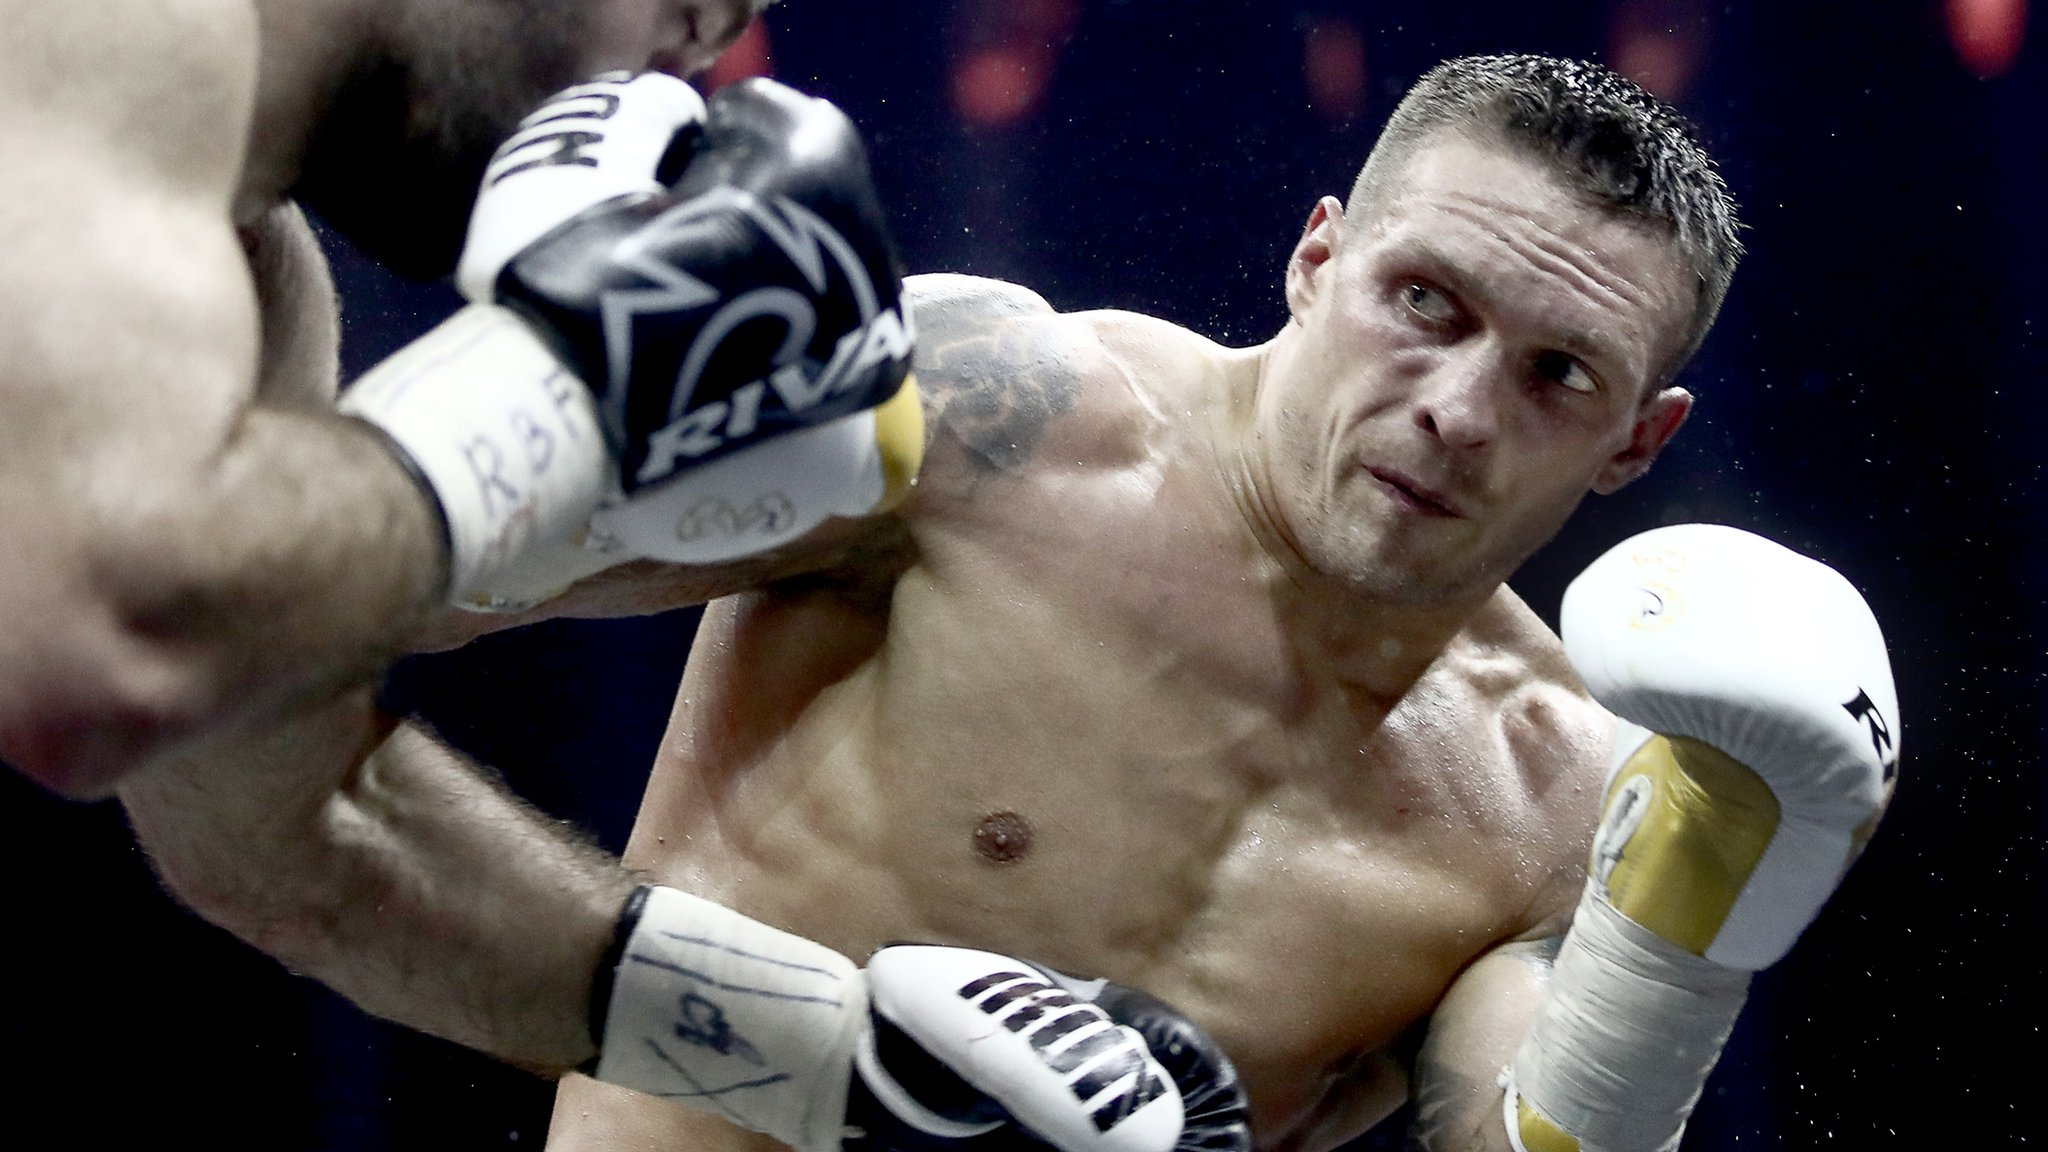 Oleksandr Usyk unifies cruiserweight division by beating Murat Gassiev